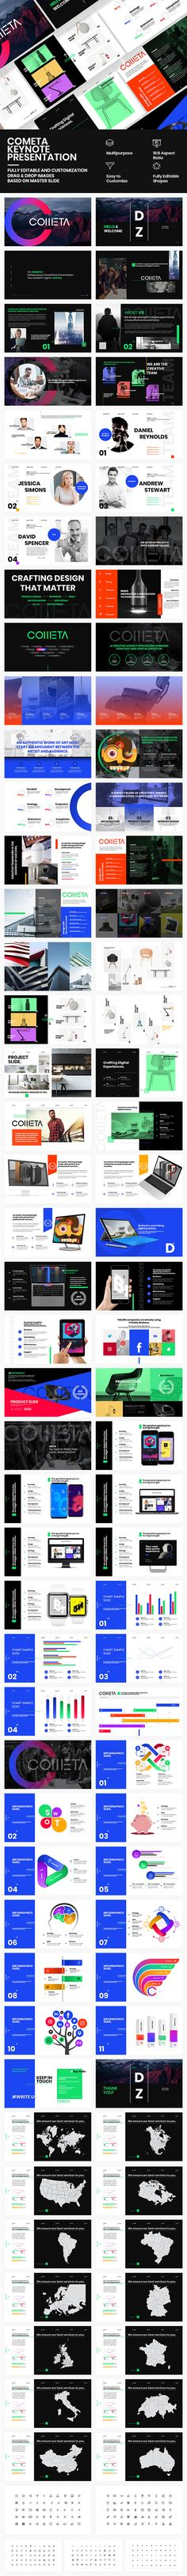 Cometa Keynote Presentation — Keynote KEY #portfolio #corporate presentation • Available here ➝ https://graphicriver.net/item/cometa-keynote-presentation/20716157?ref=pxcr